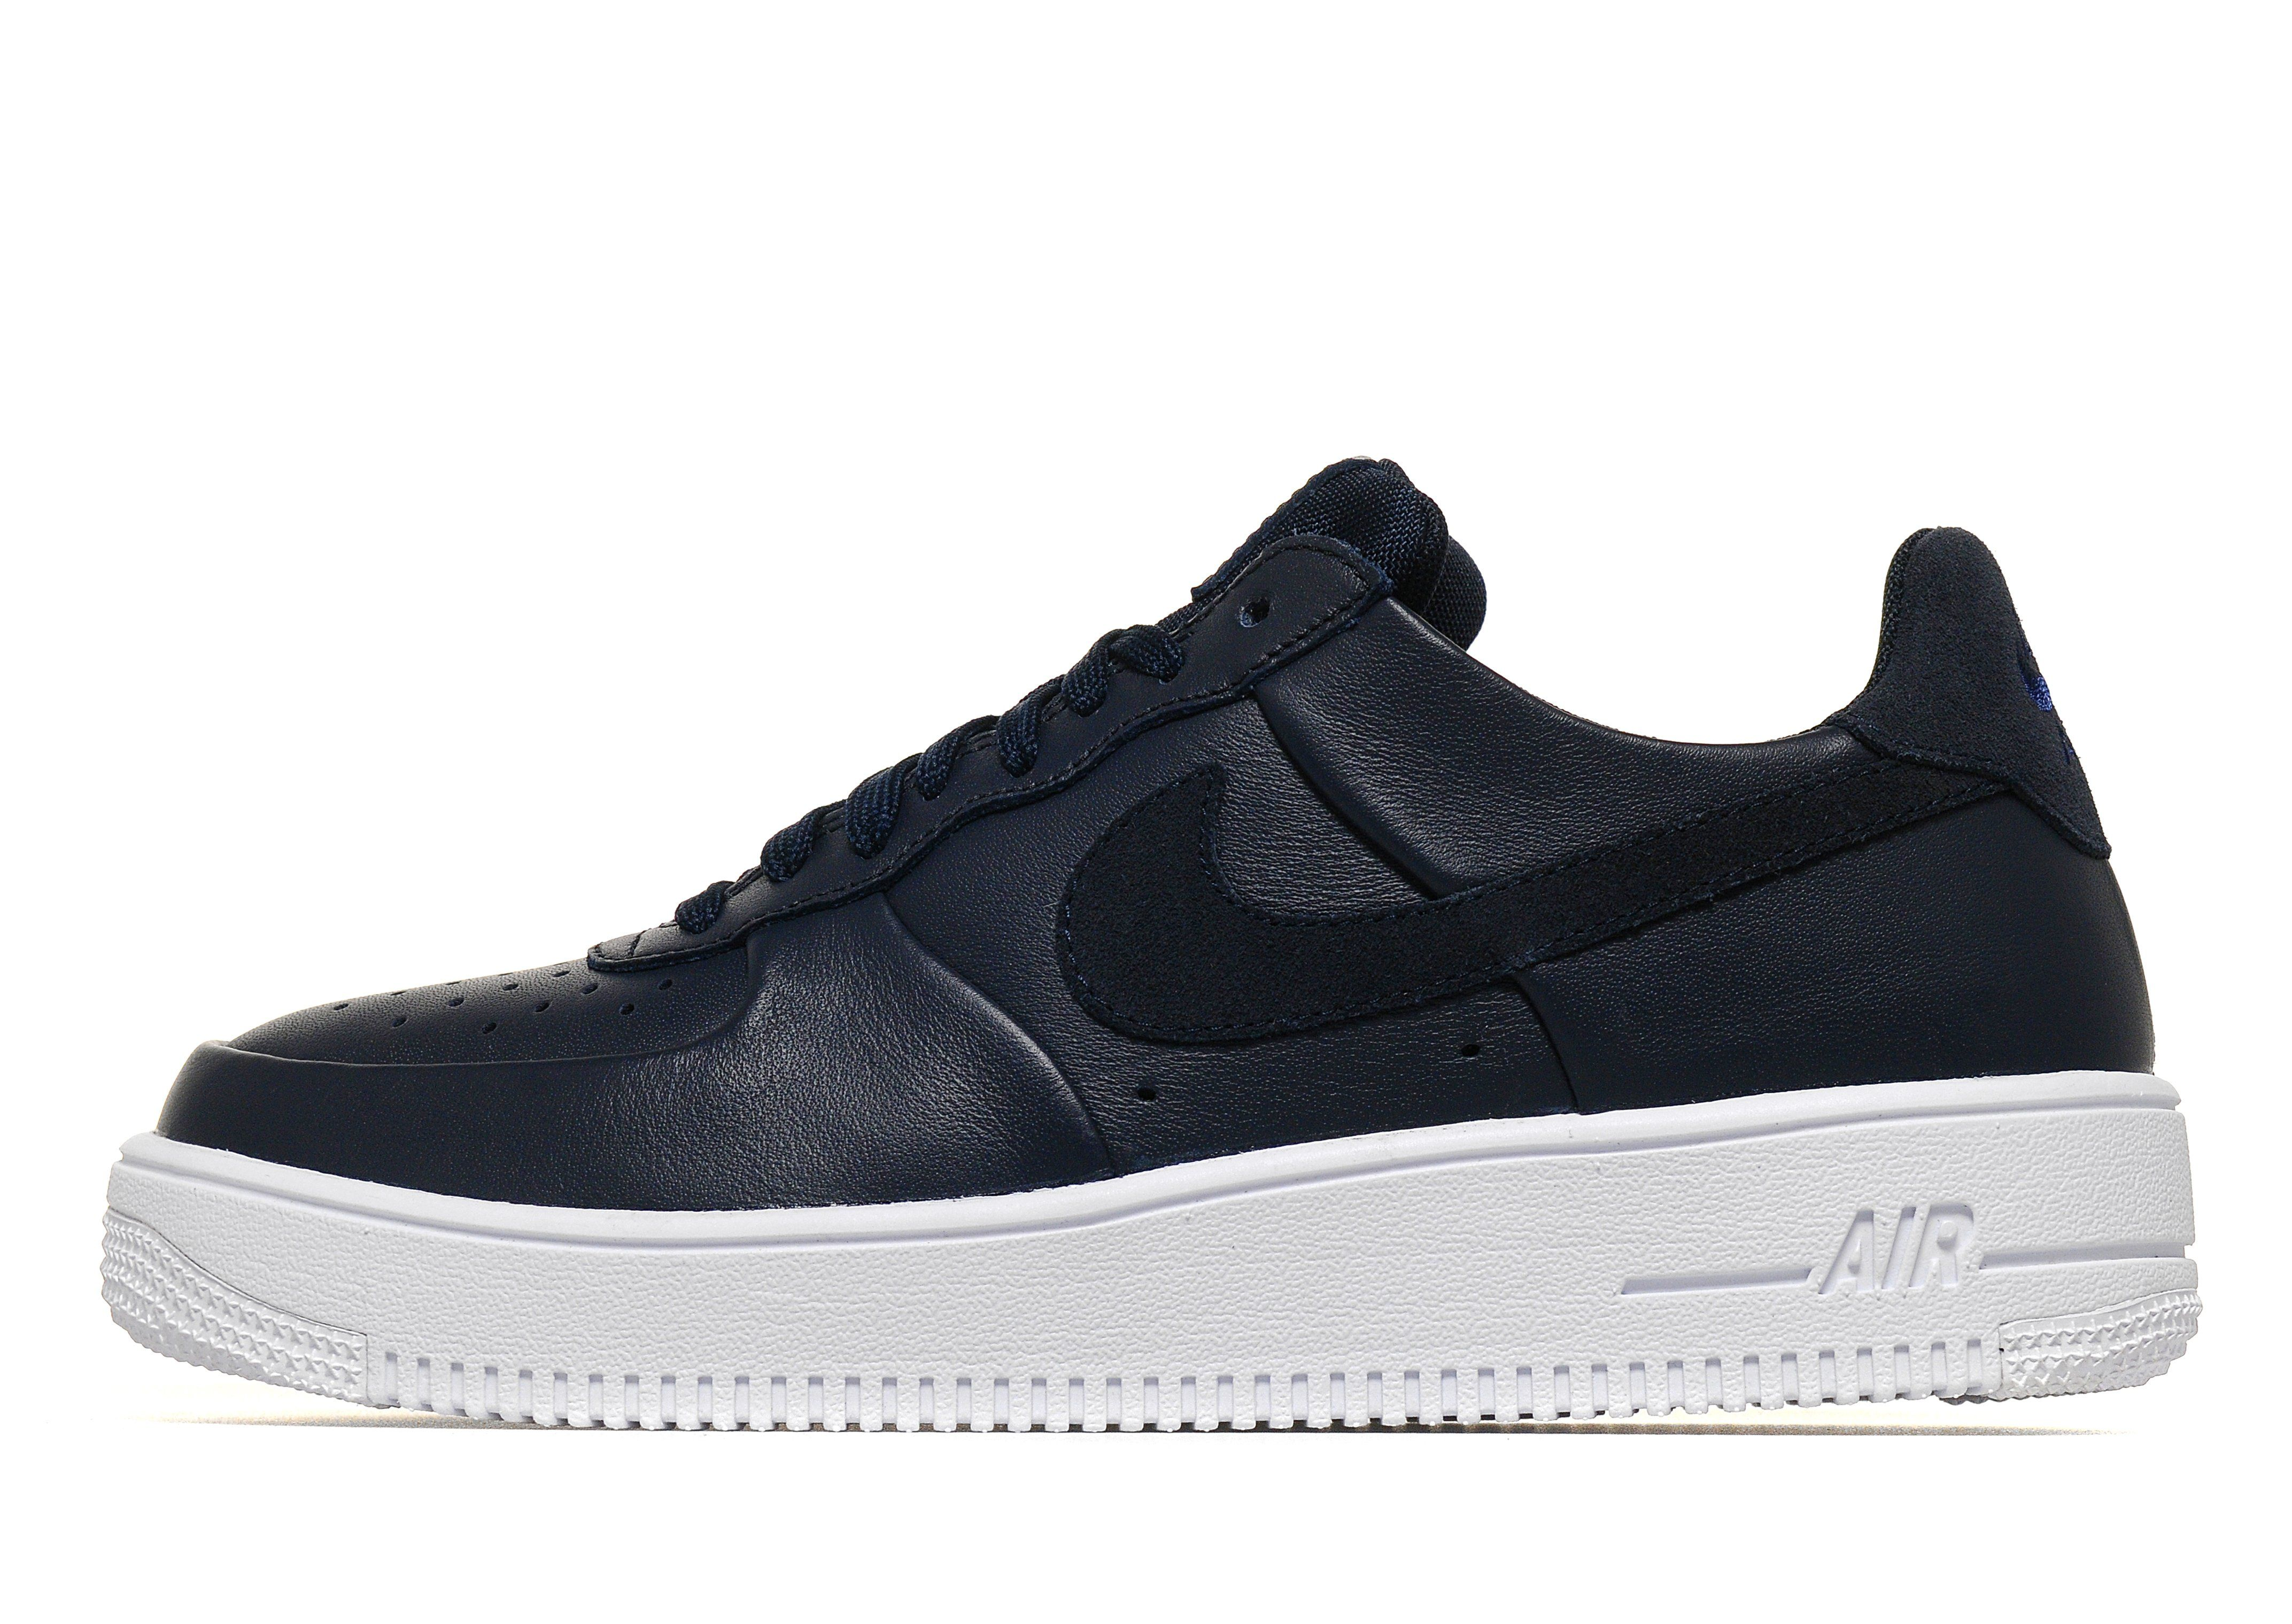 5a222981a Nike Air Force 1 Ultra Leather